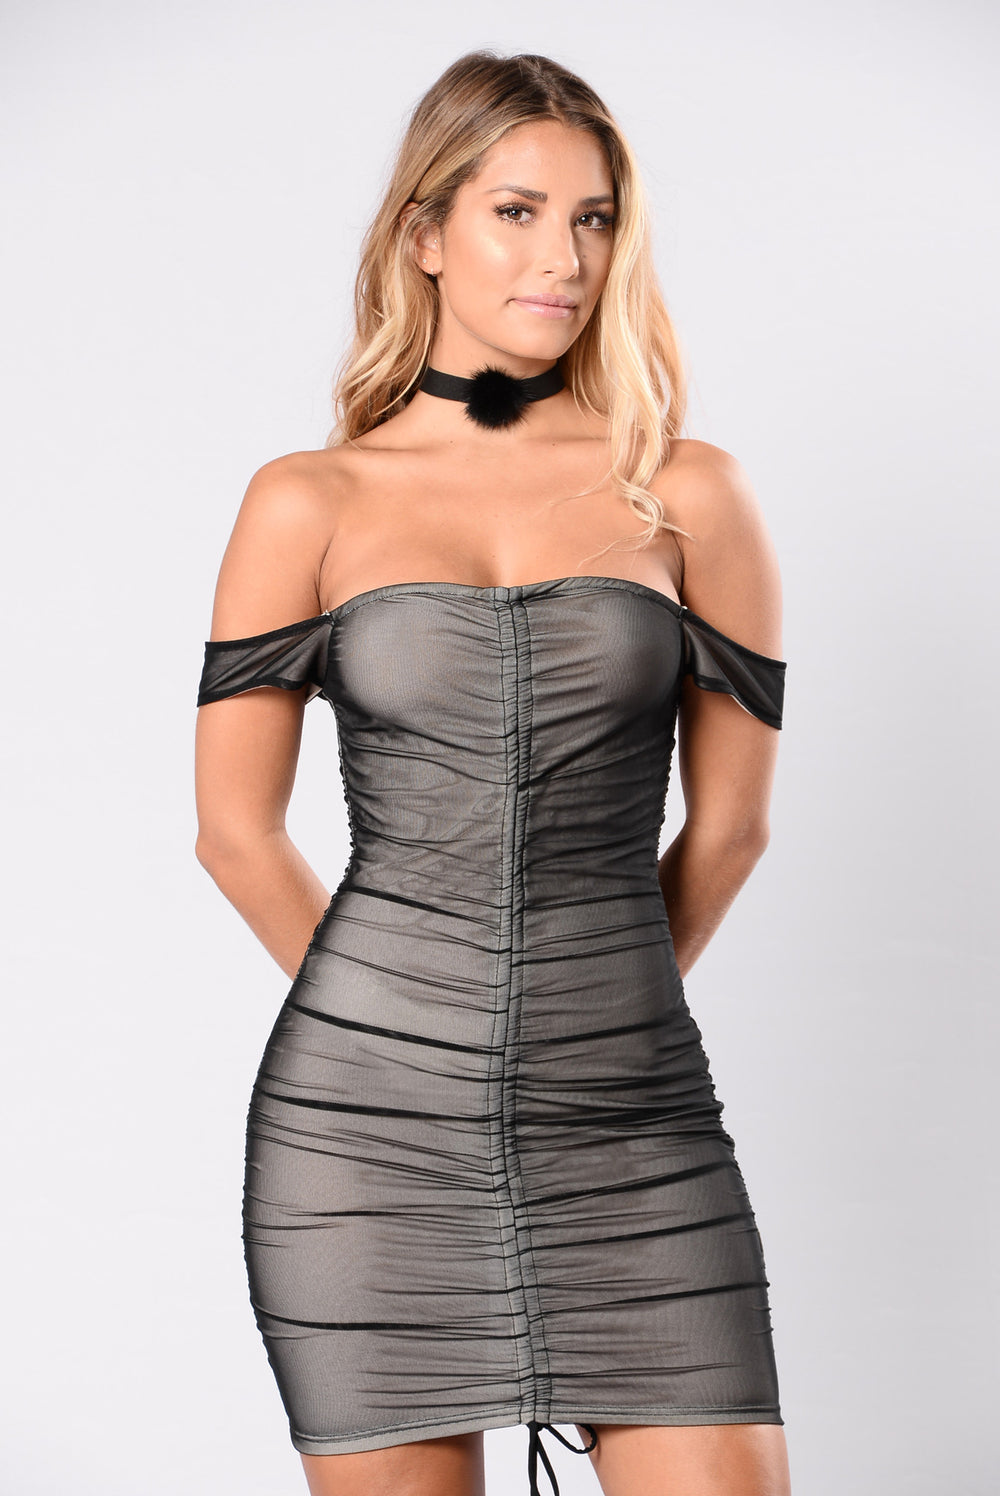 Skin Tight Dress - Black/Nude